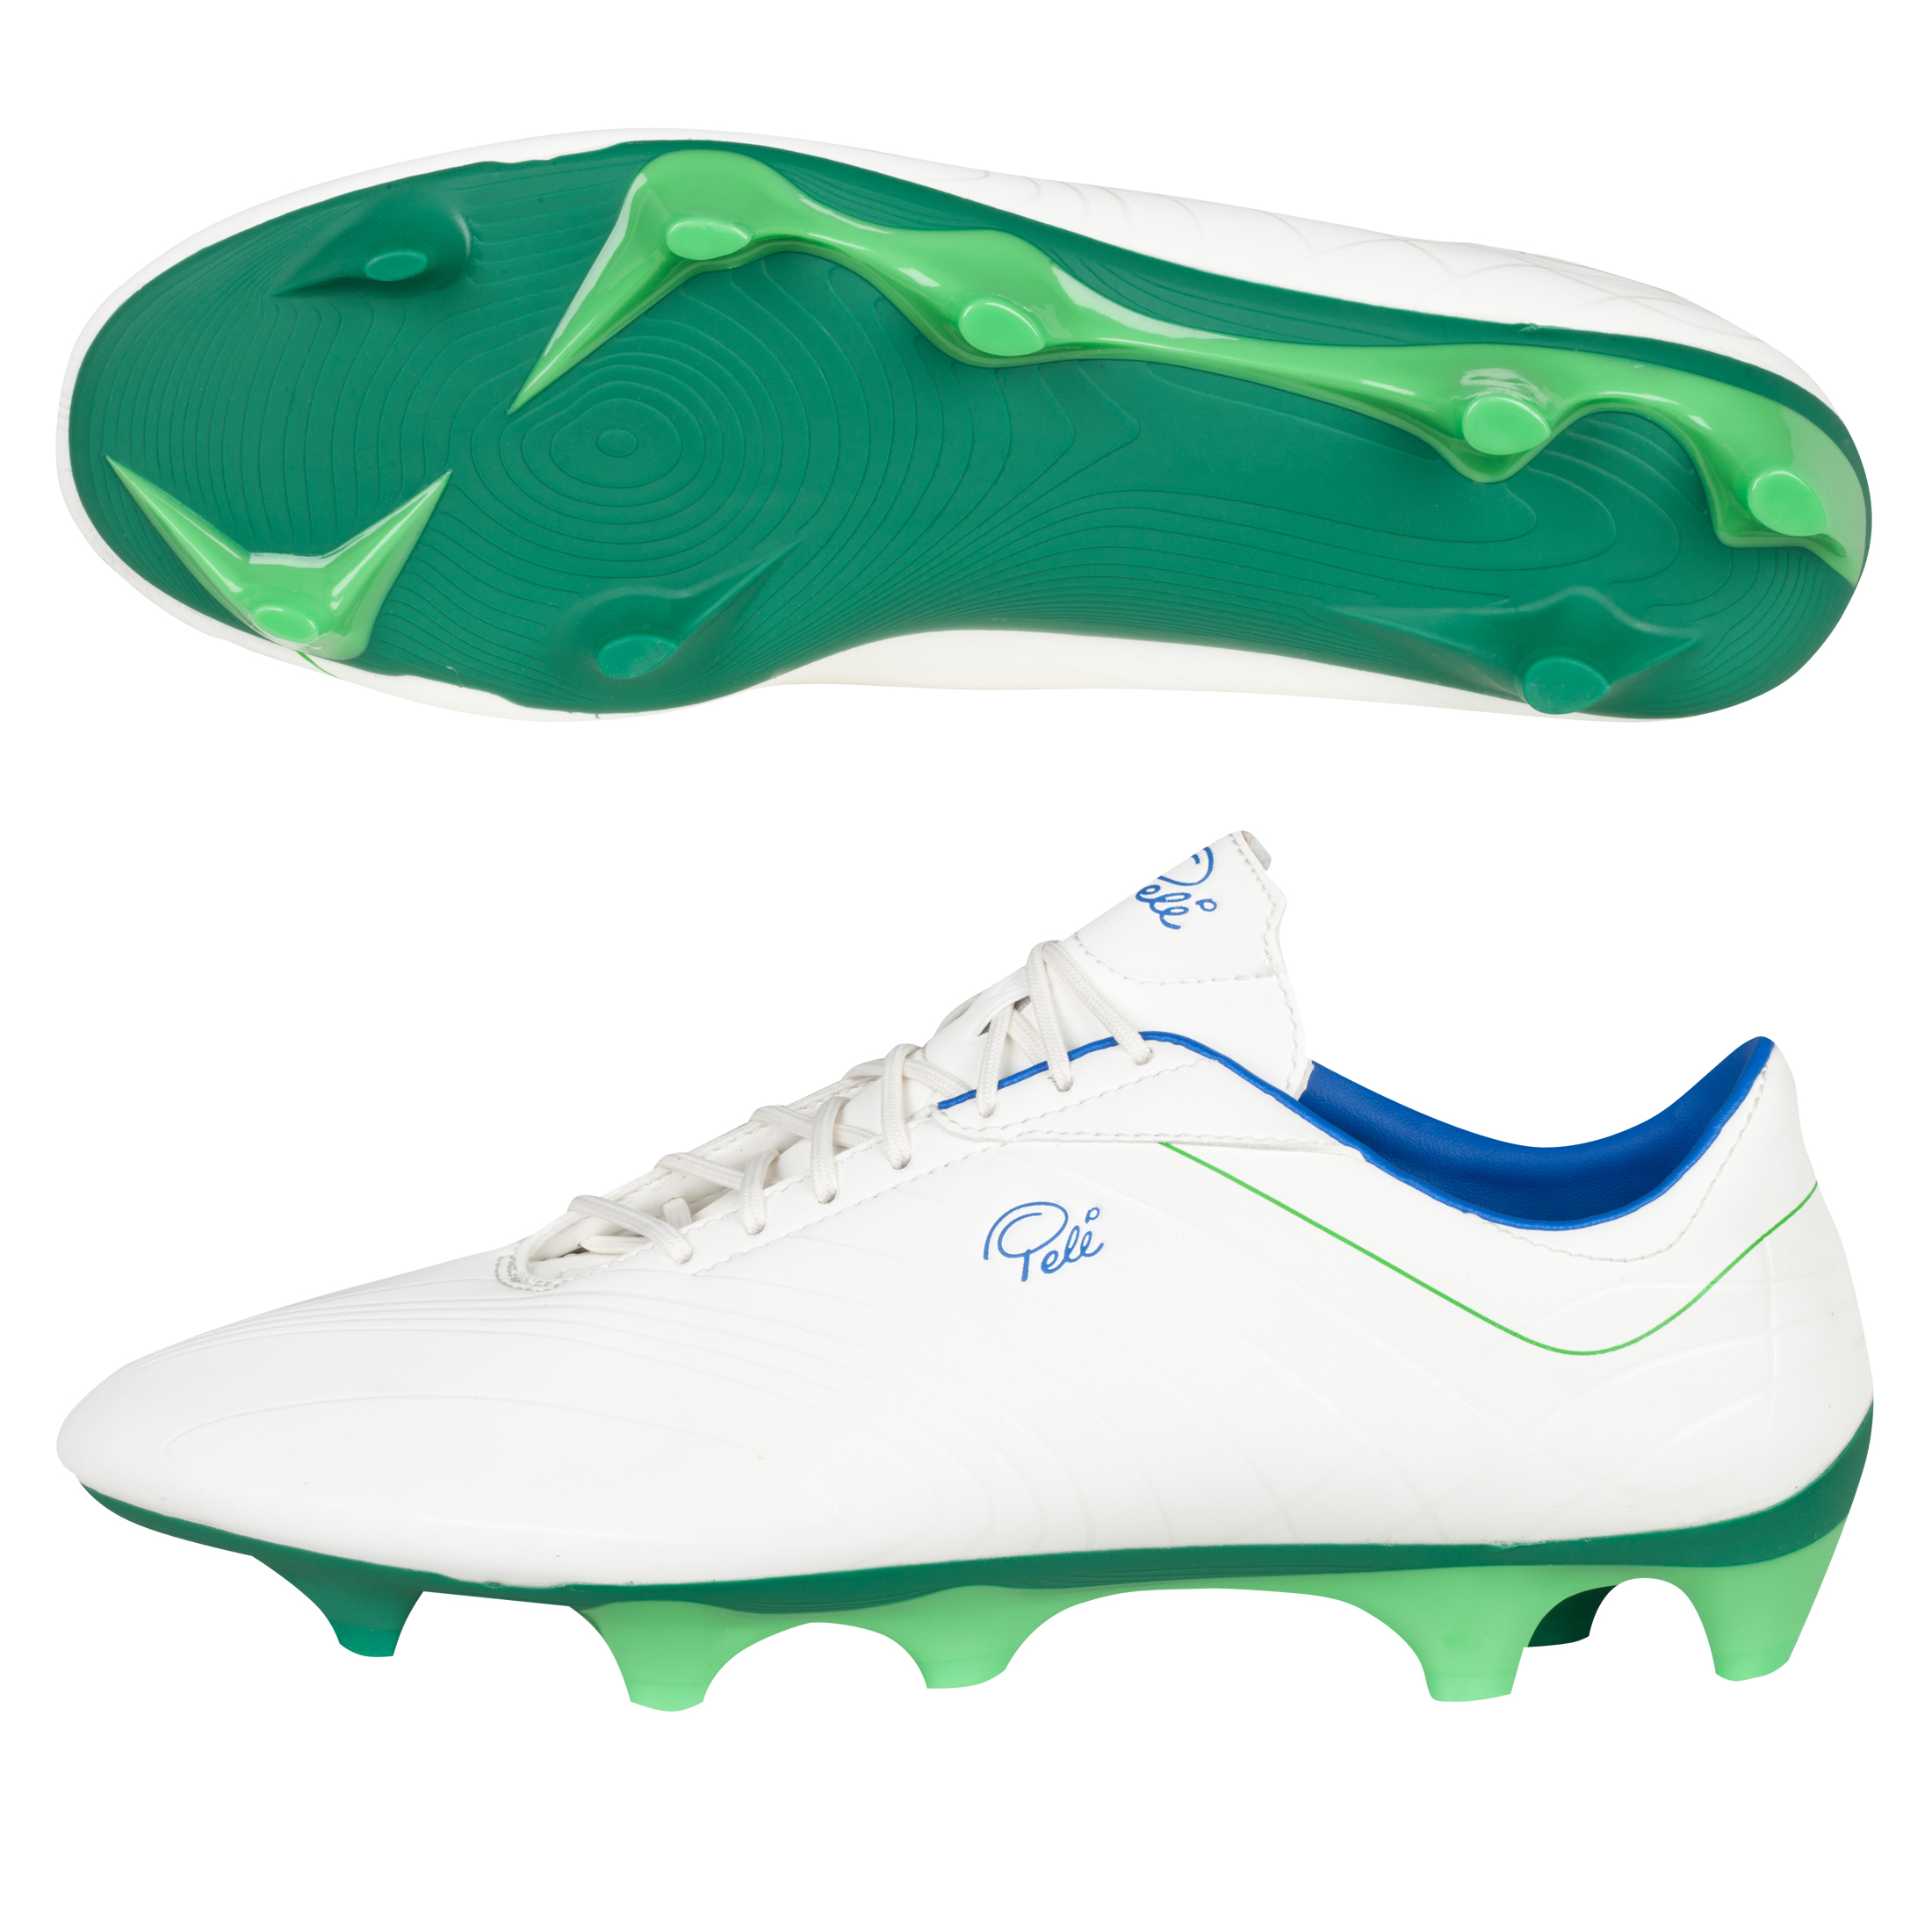 Pele Sports Galileo Firm Ground Football Boots - Snow White/Amazon/Classic Green